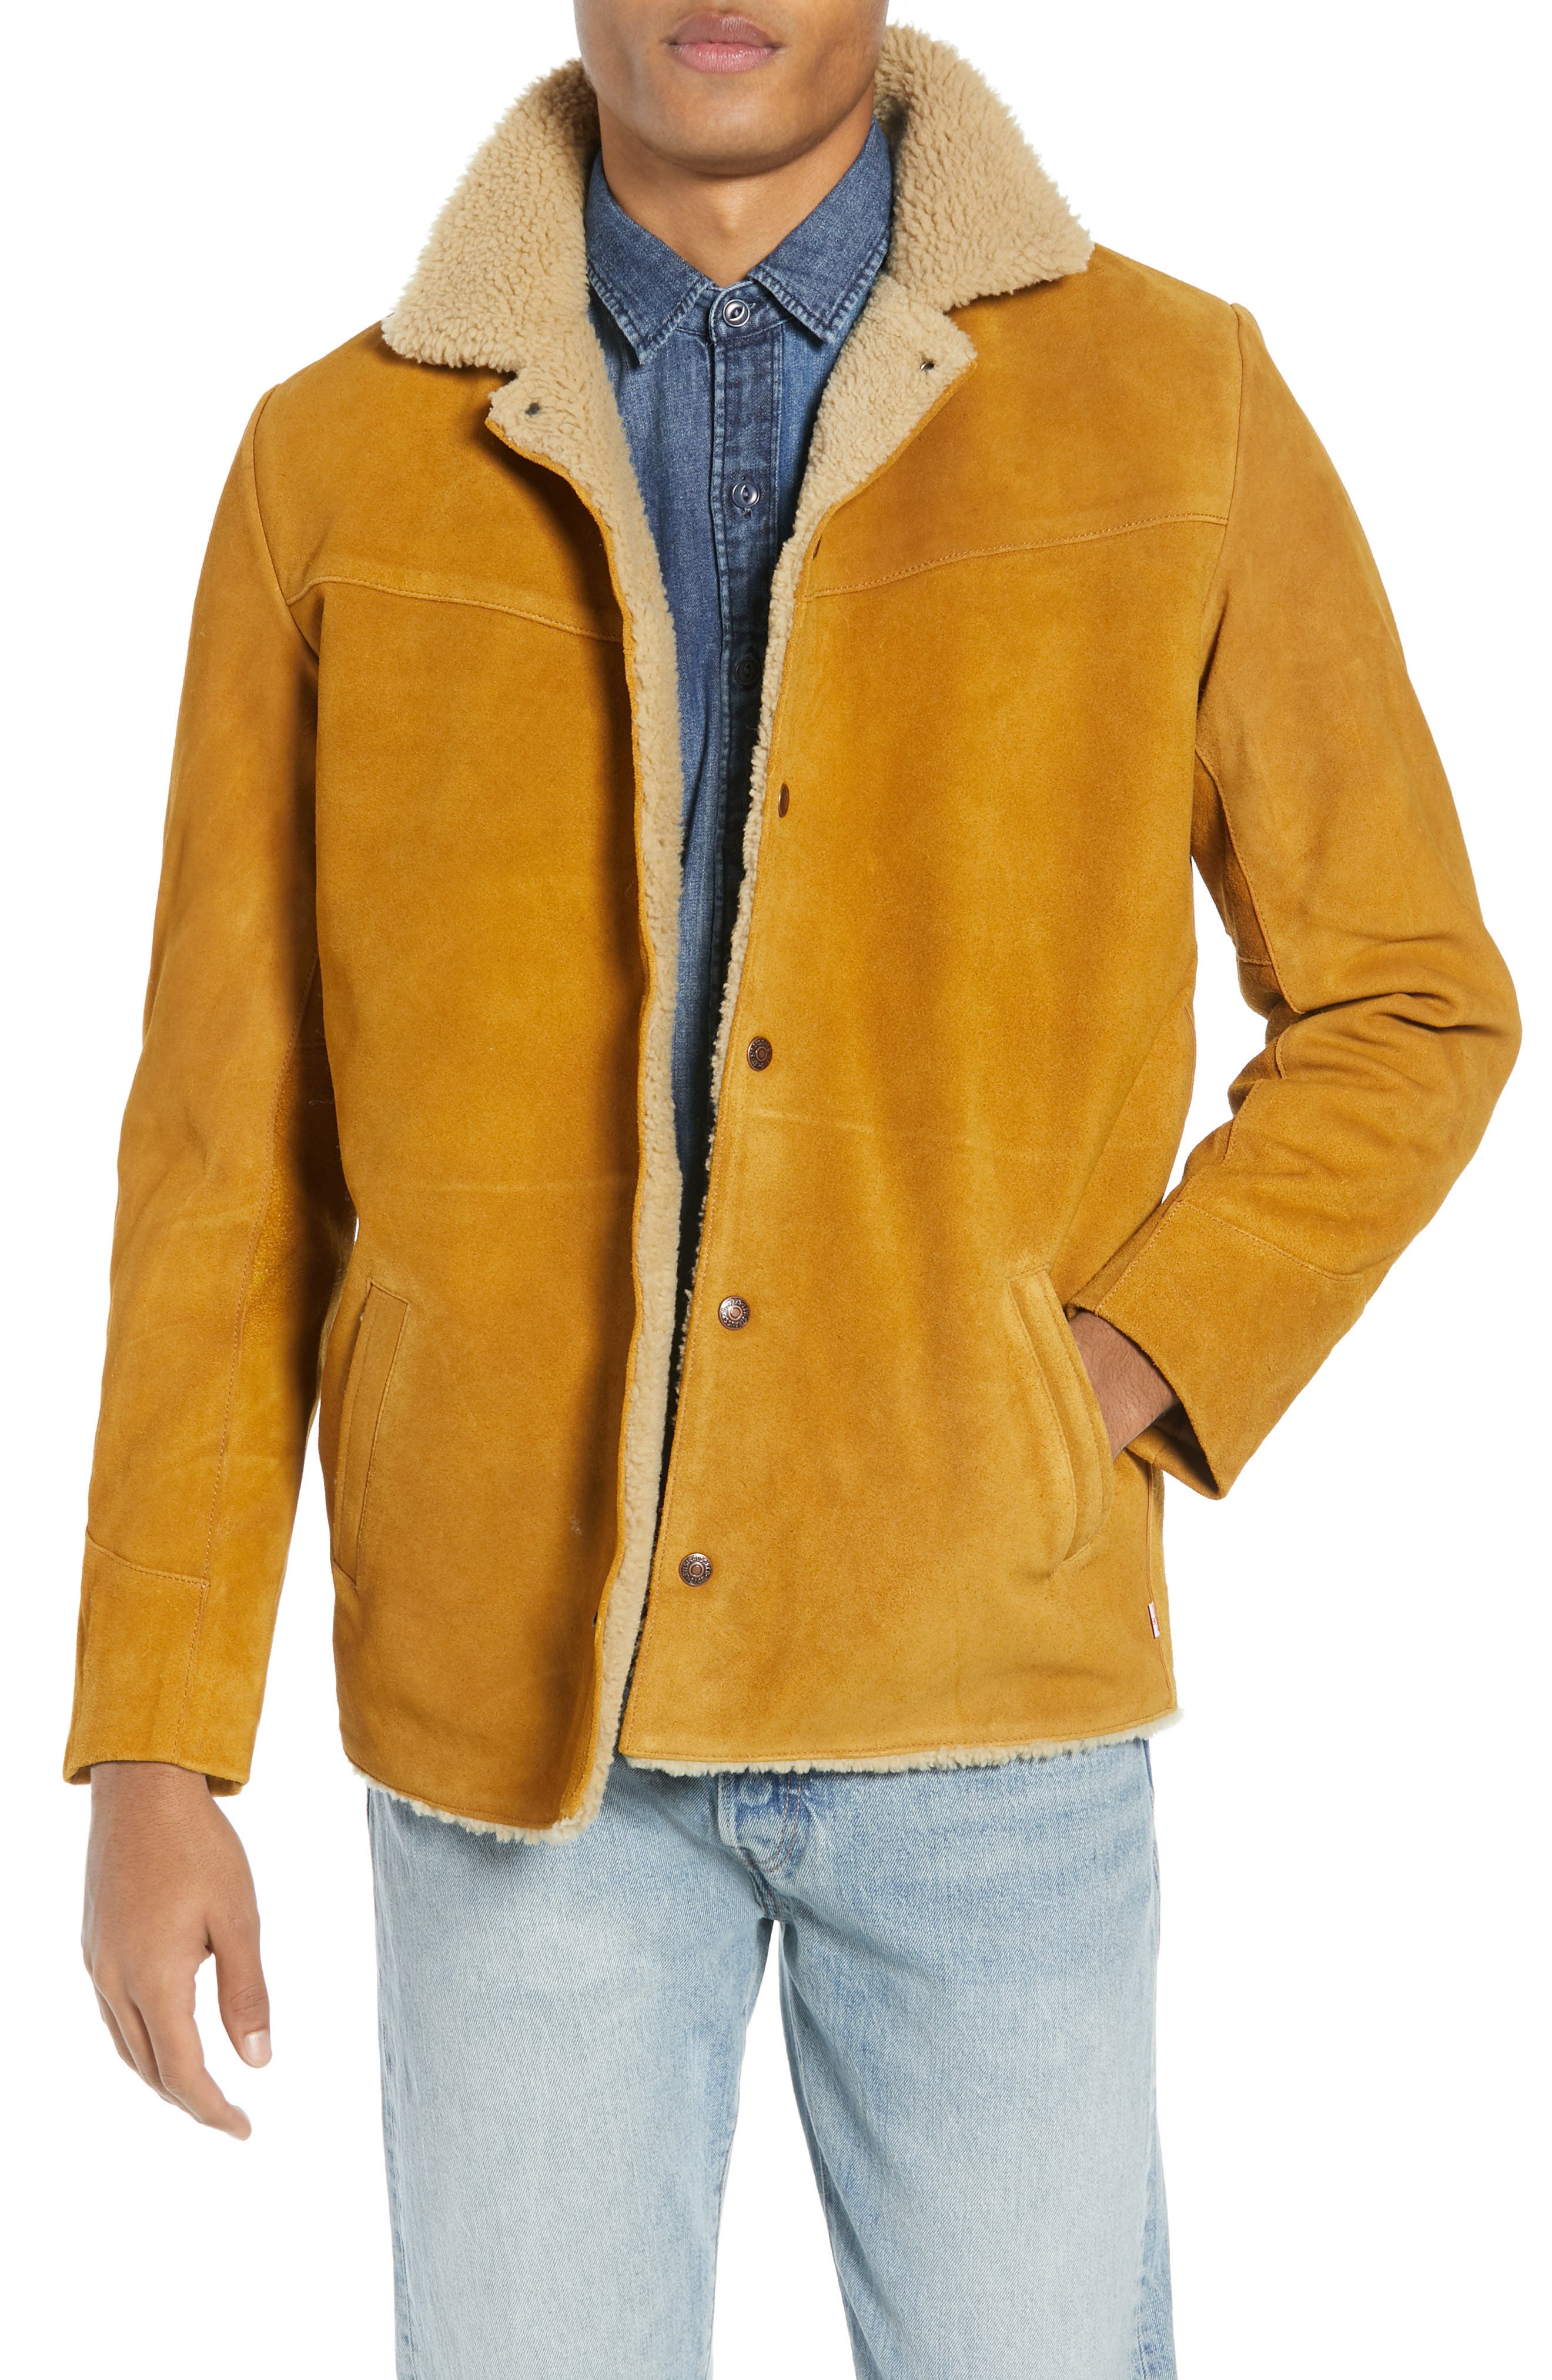 Levi's<sup>®</sup> Fleece Lined Suede Jacket,                         Main,                         color, 250